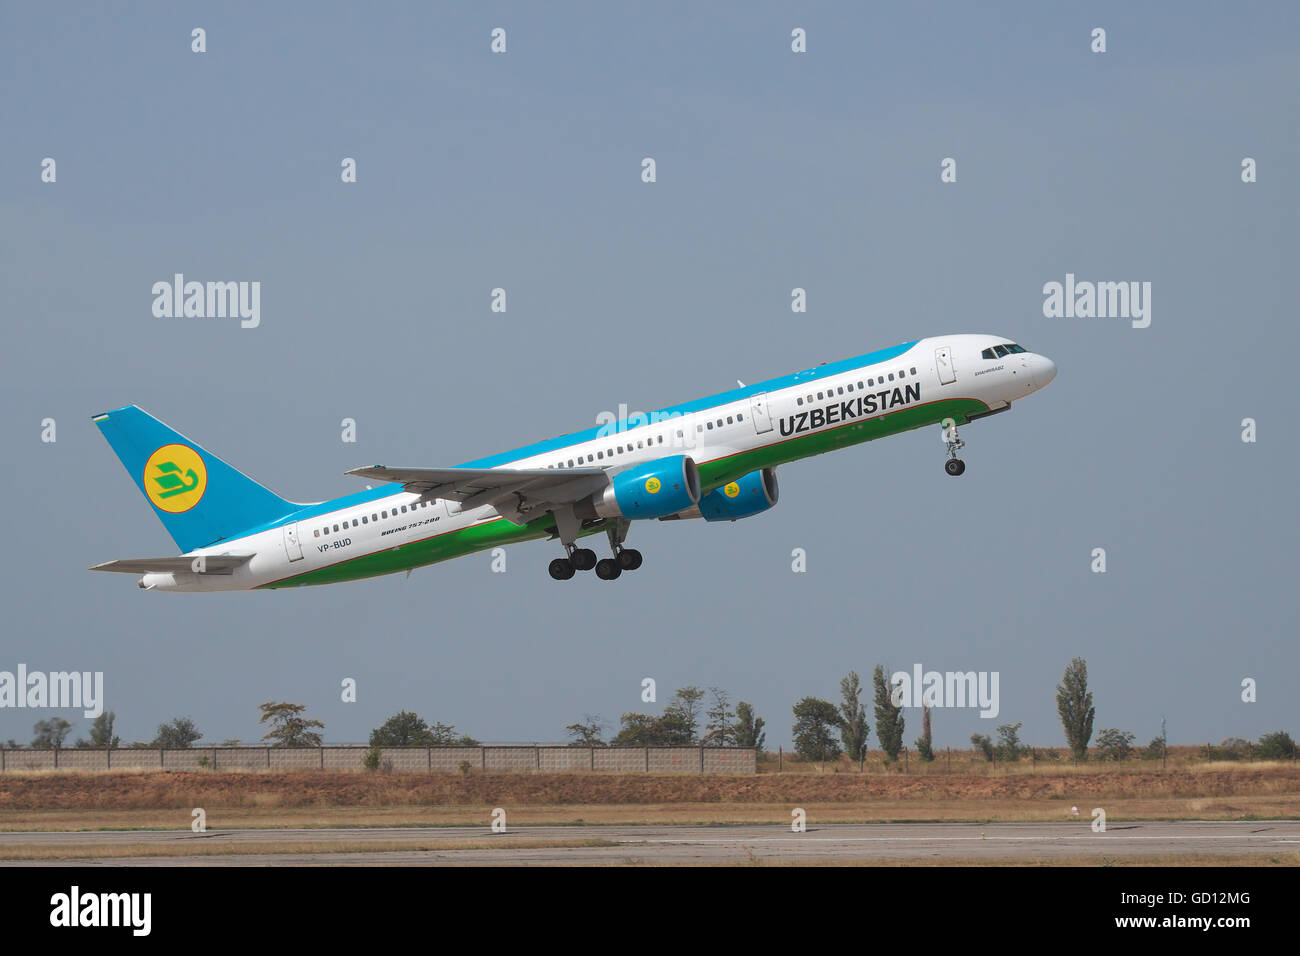 Simferopol, Ukraine - September 13, 2010: Uzbekistan Airways Bowing 757-200 is taking off from the runway - Stock Image